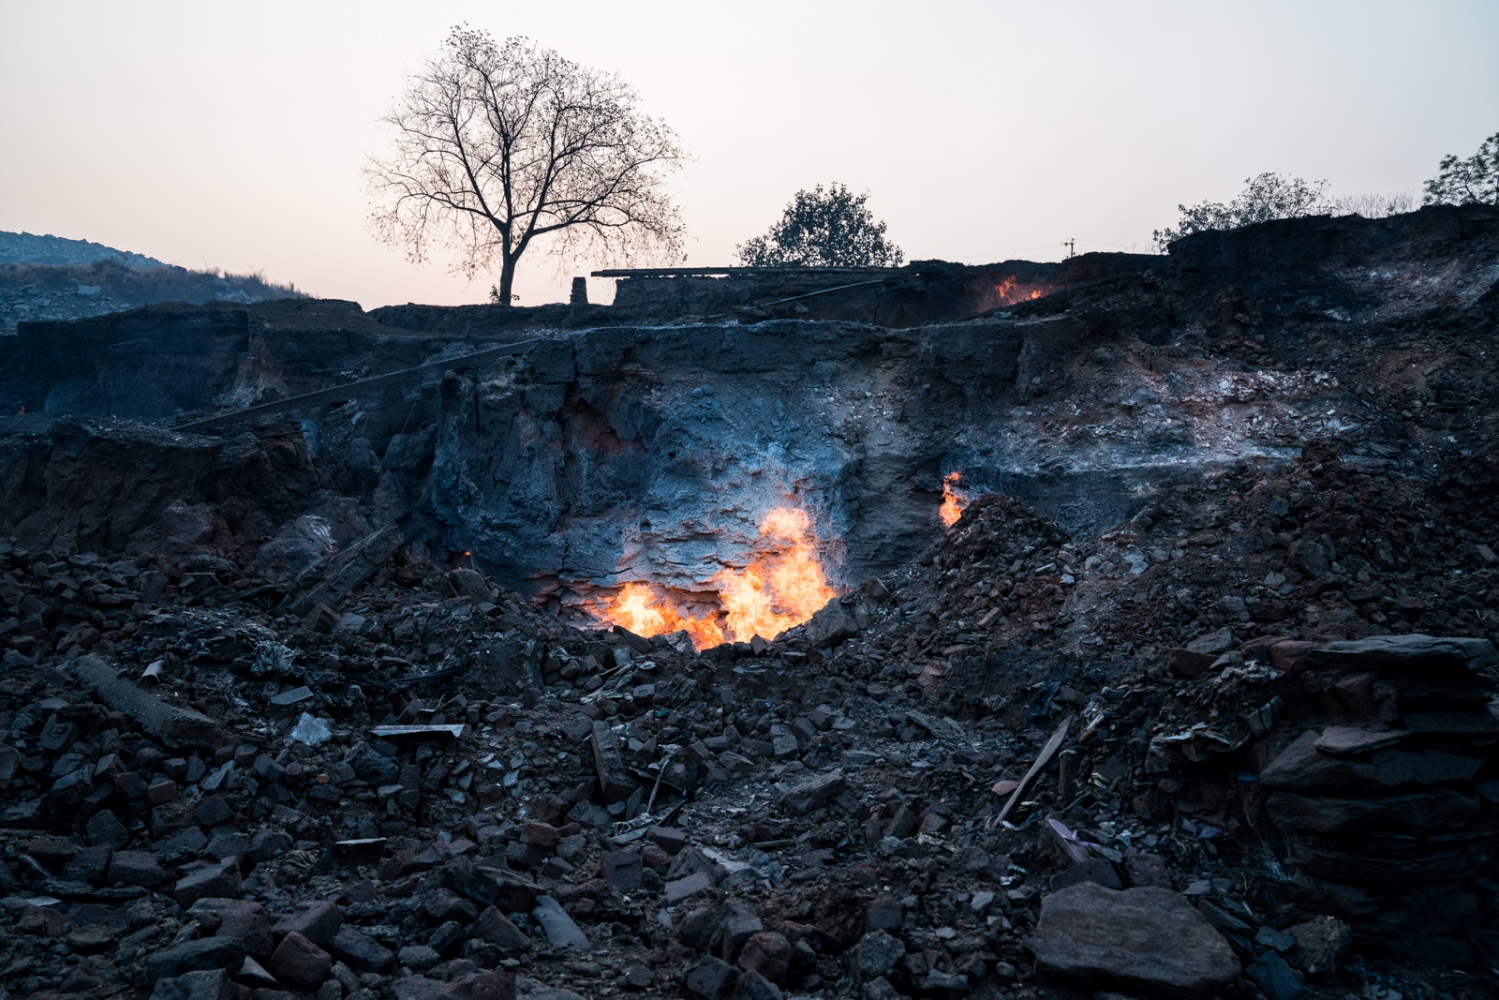 Leftover rubble from a village that has has been destroyed by the collapse of the land due to the underground fire.